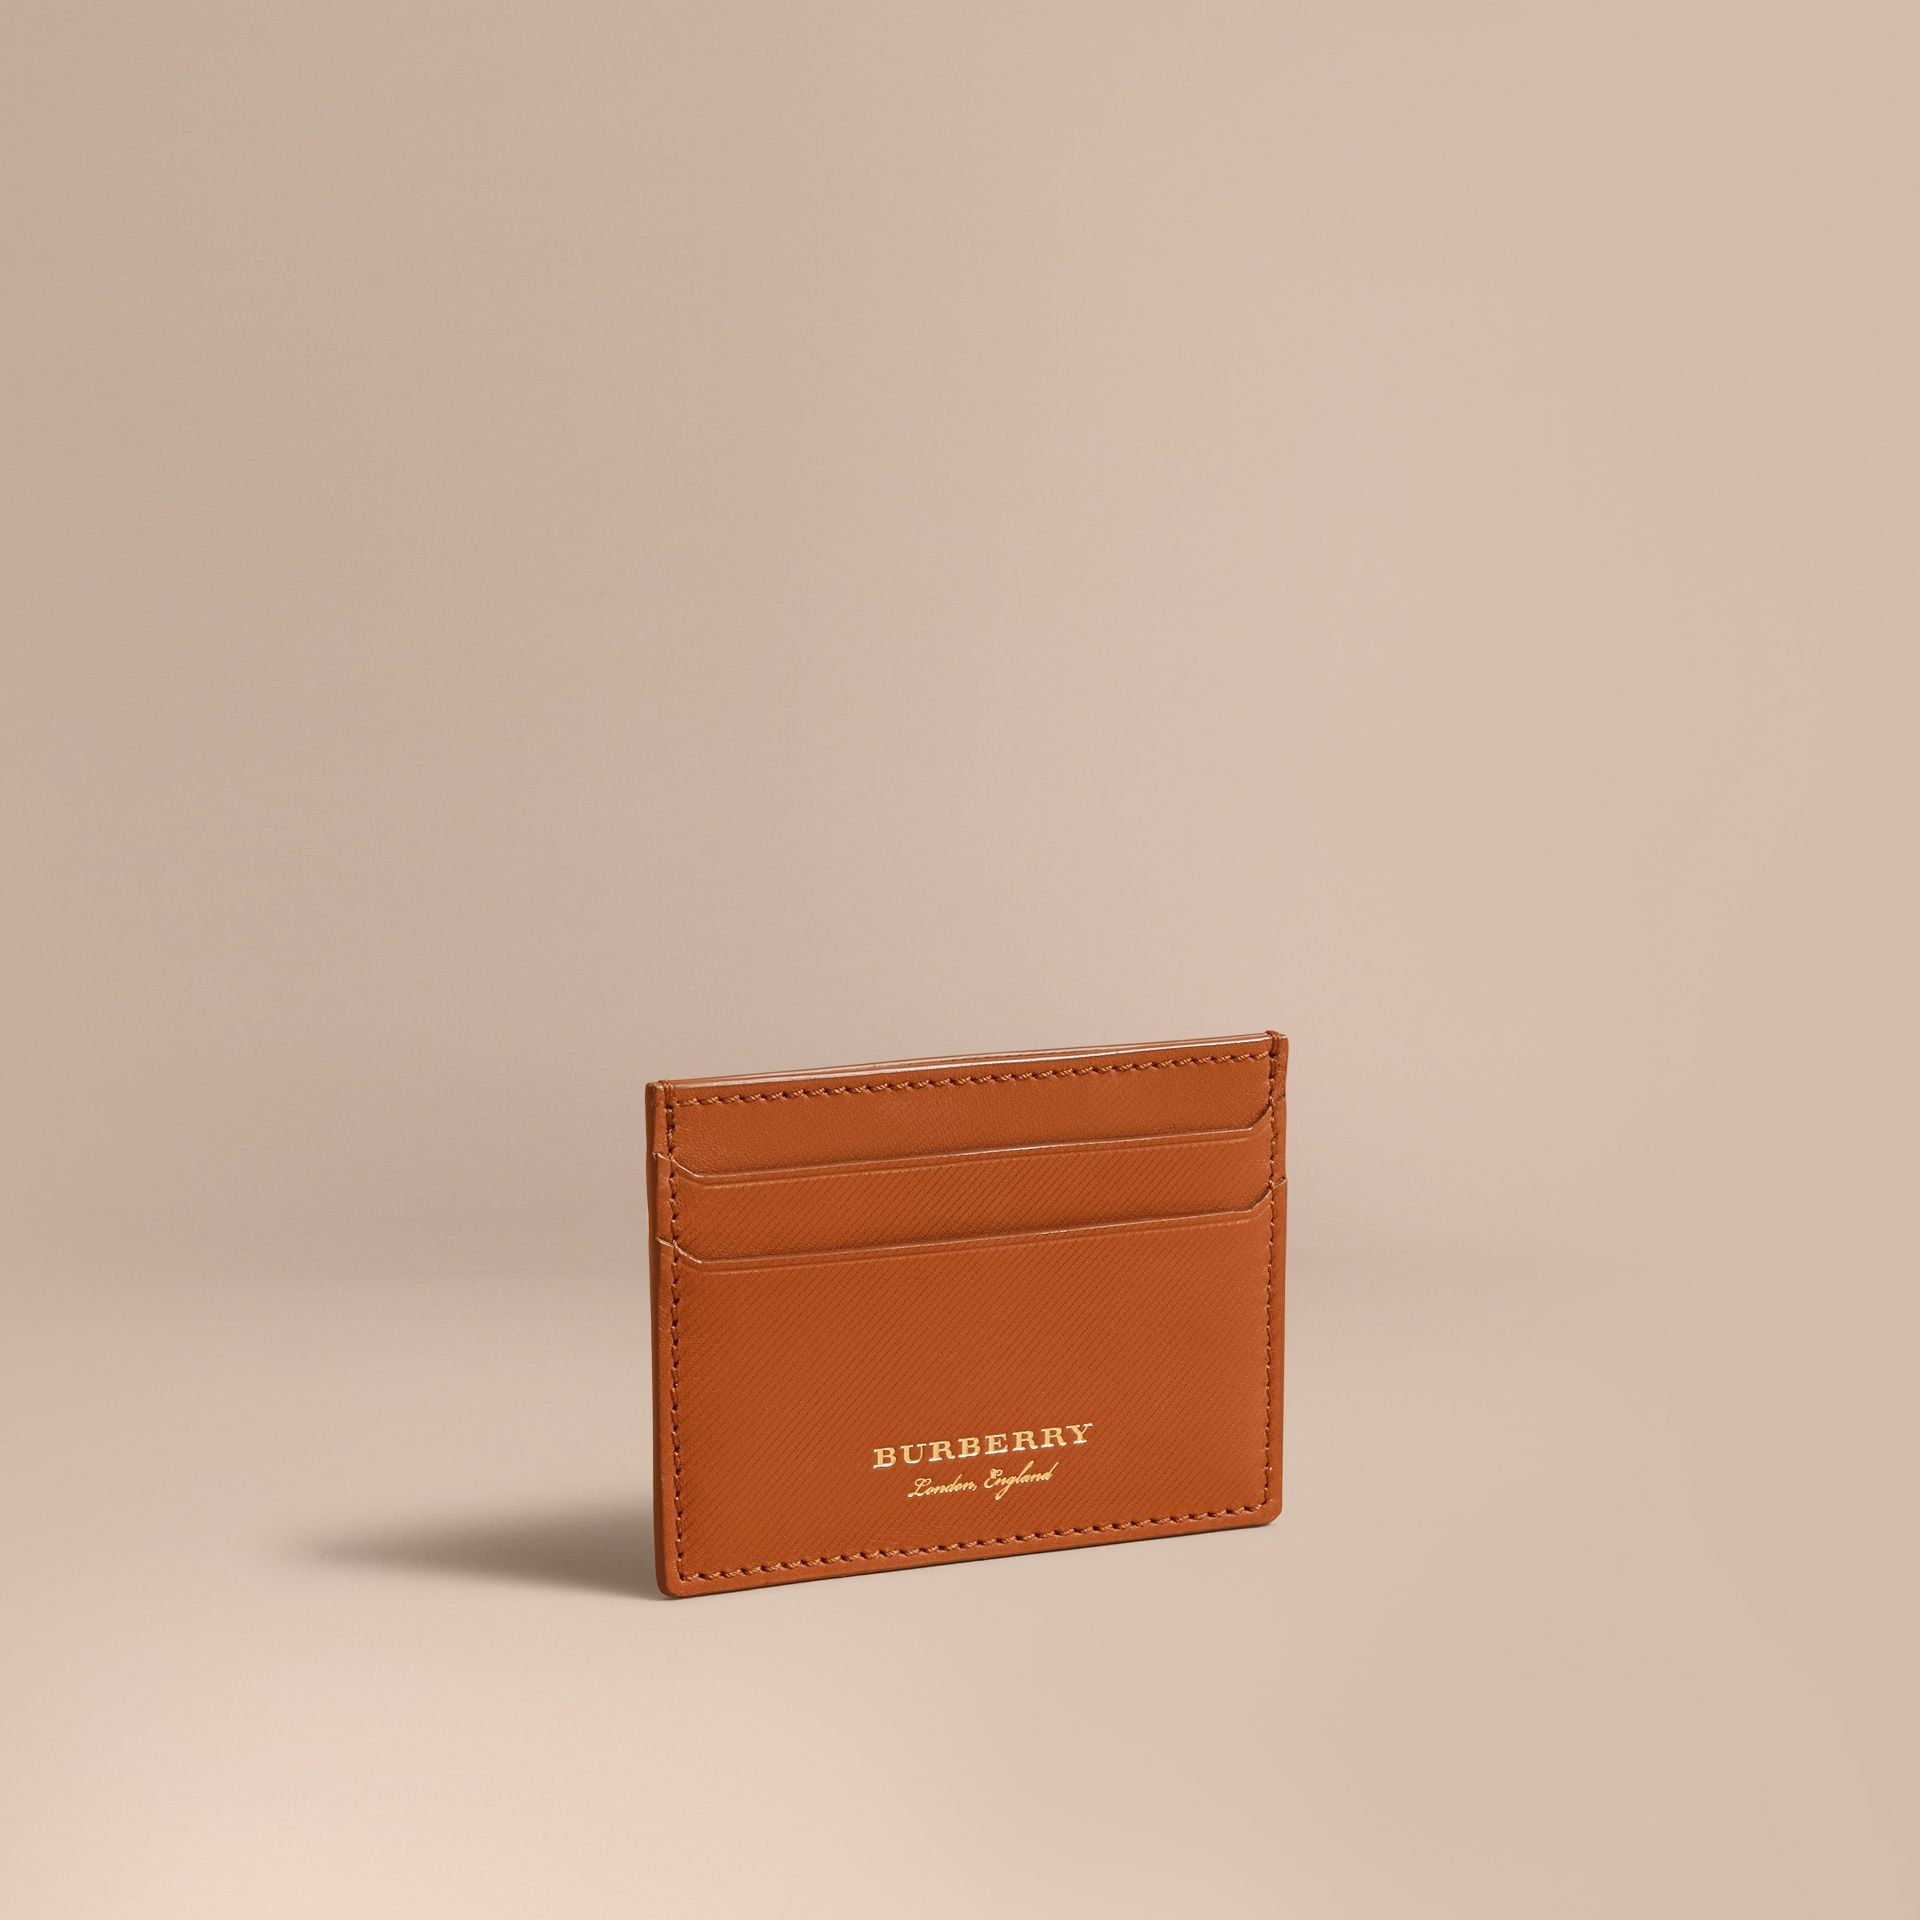 Trench Leather Card Case in Tan - Men | Burberry United Kingdom - gallery image 1